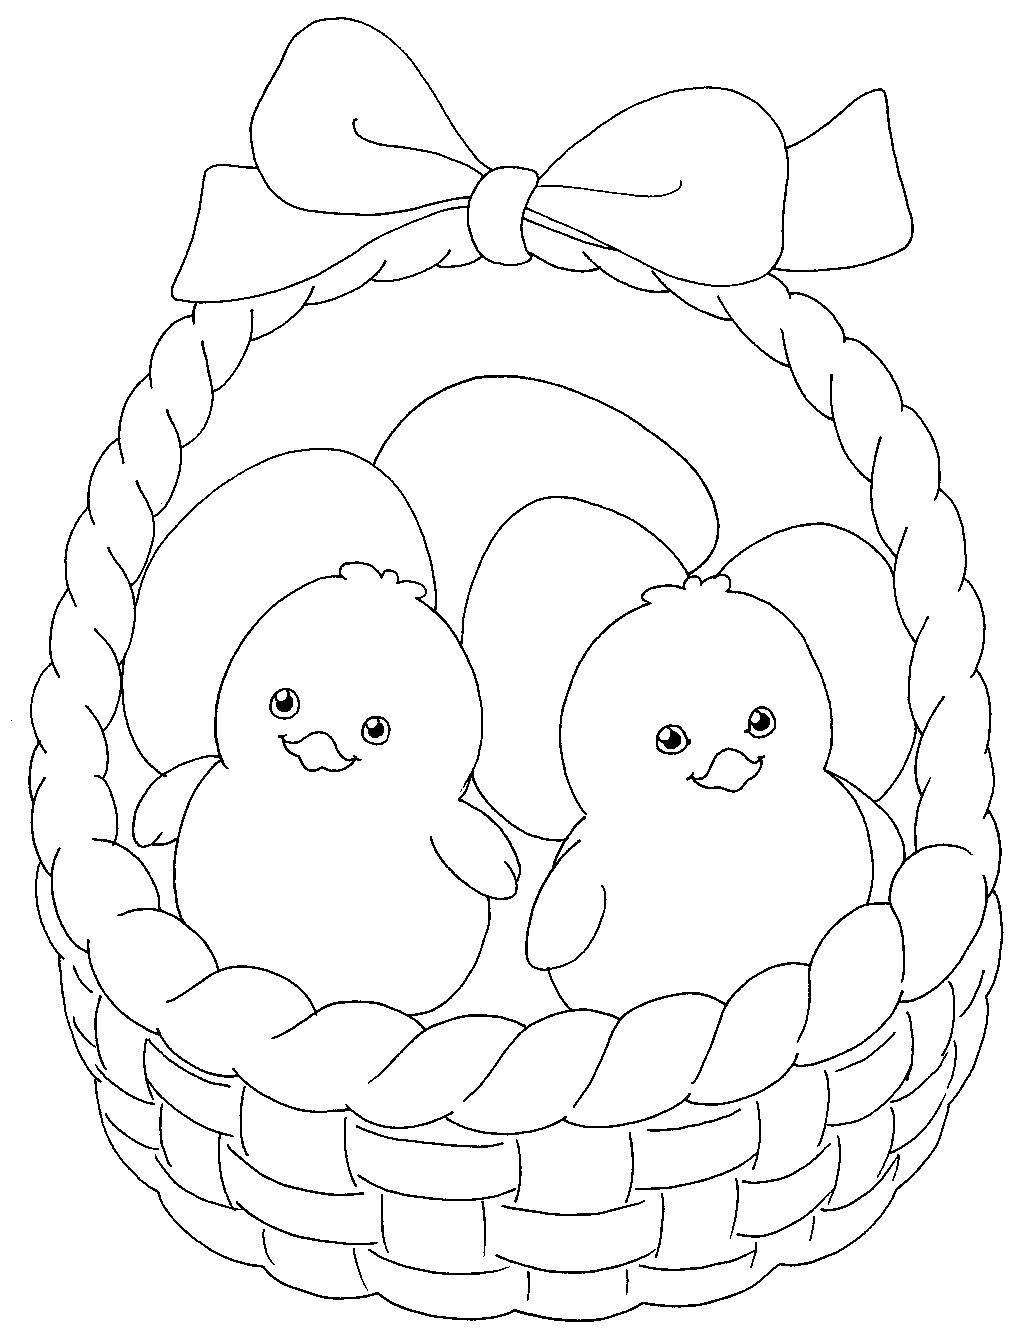 Best Easter Baby Chicks Coloring Pages Free 4103 Printable Gallery Of Easter Egg Designs Coloring Pages to Print